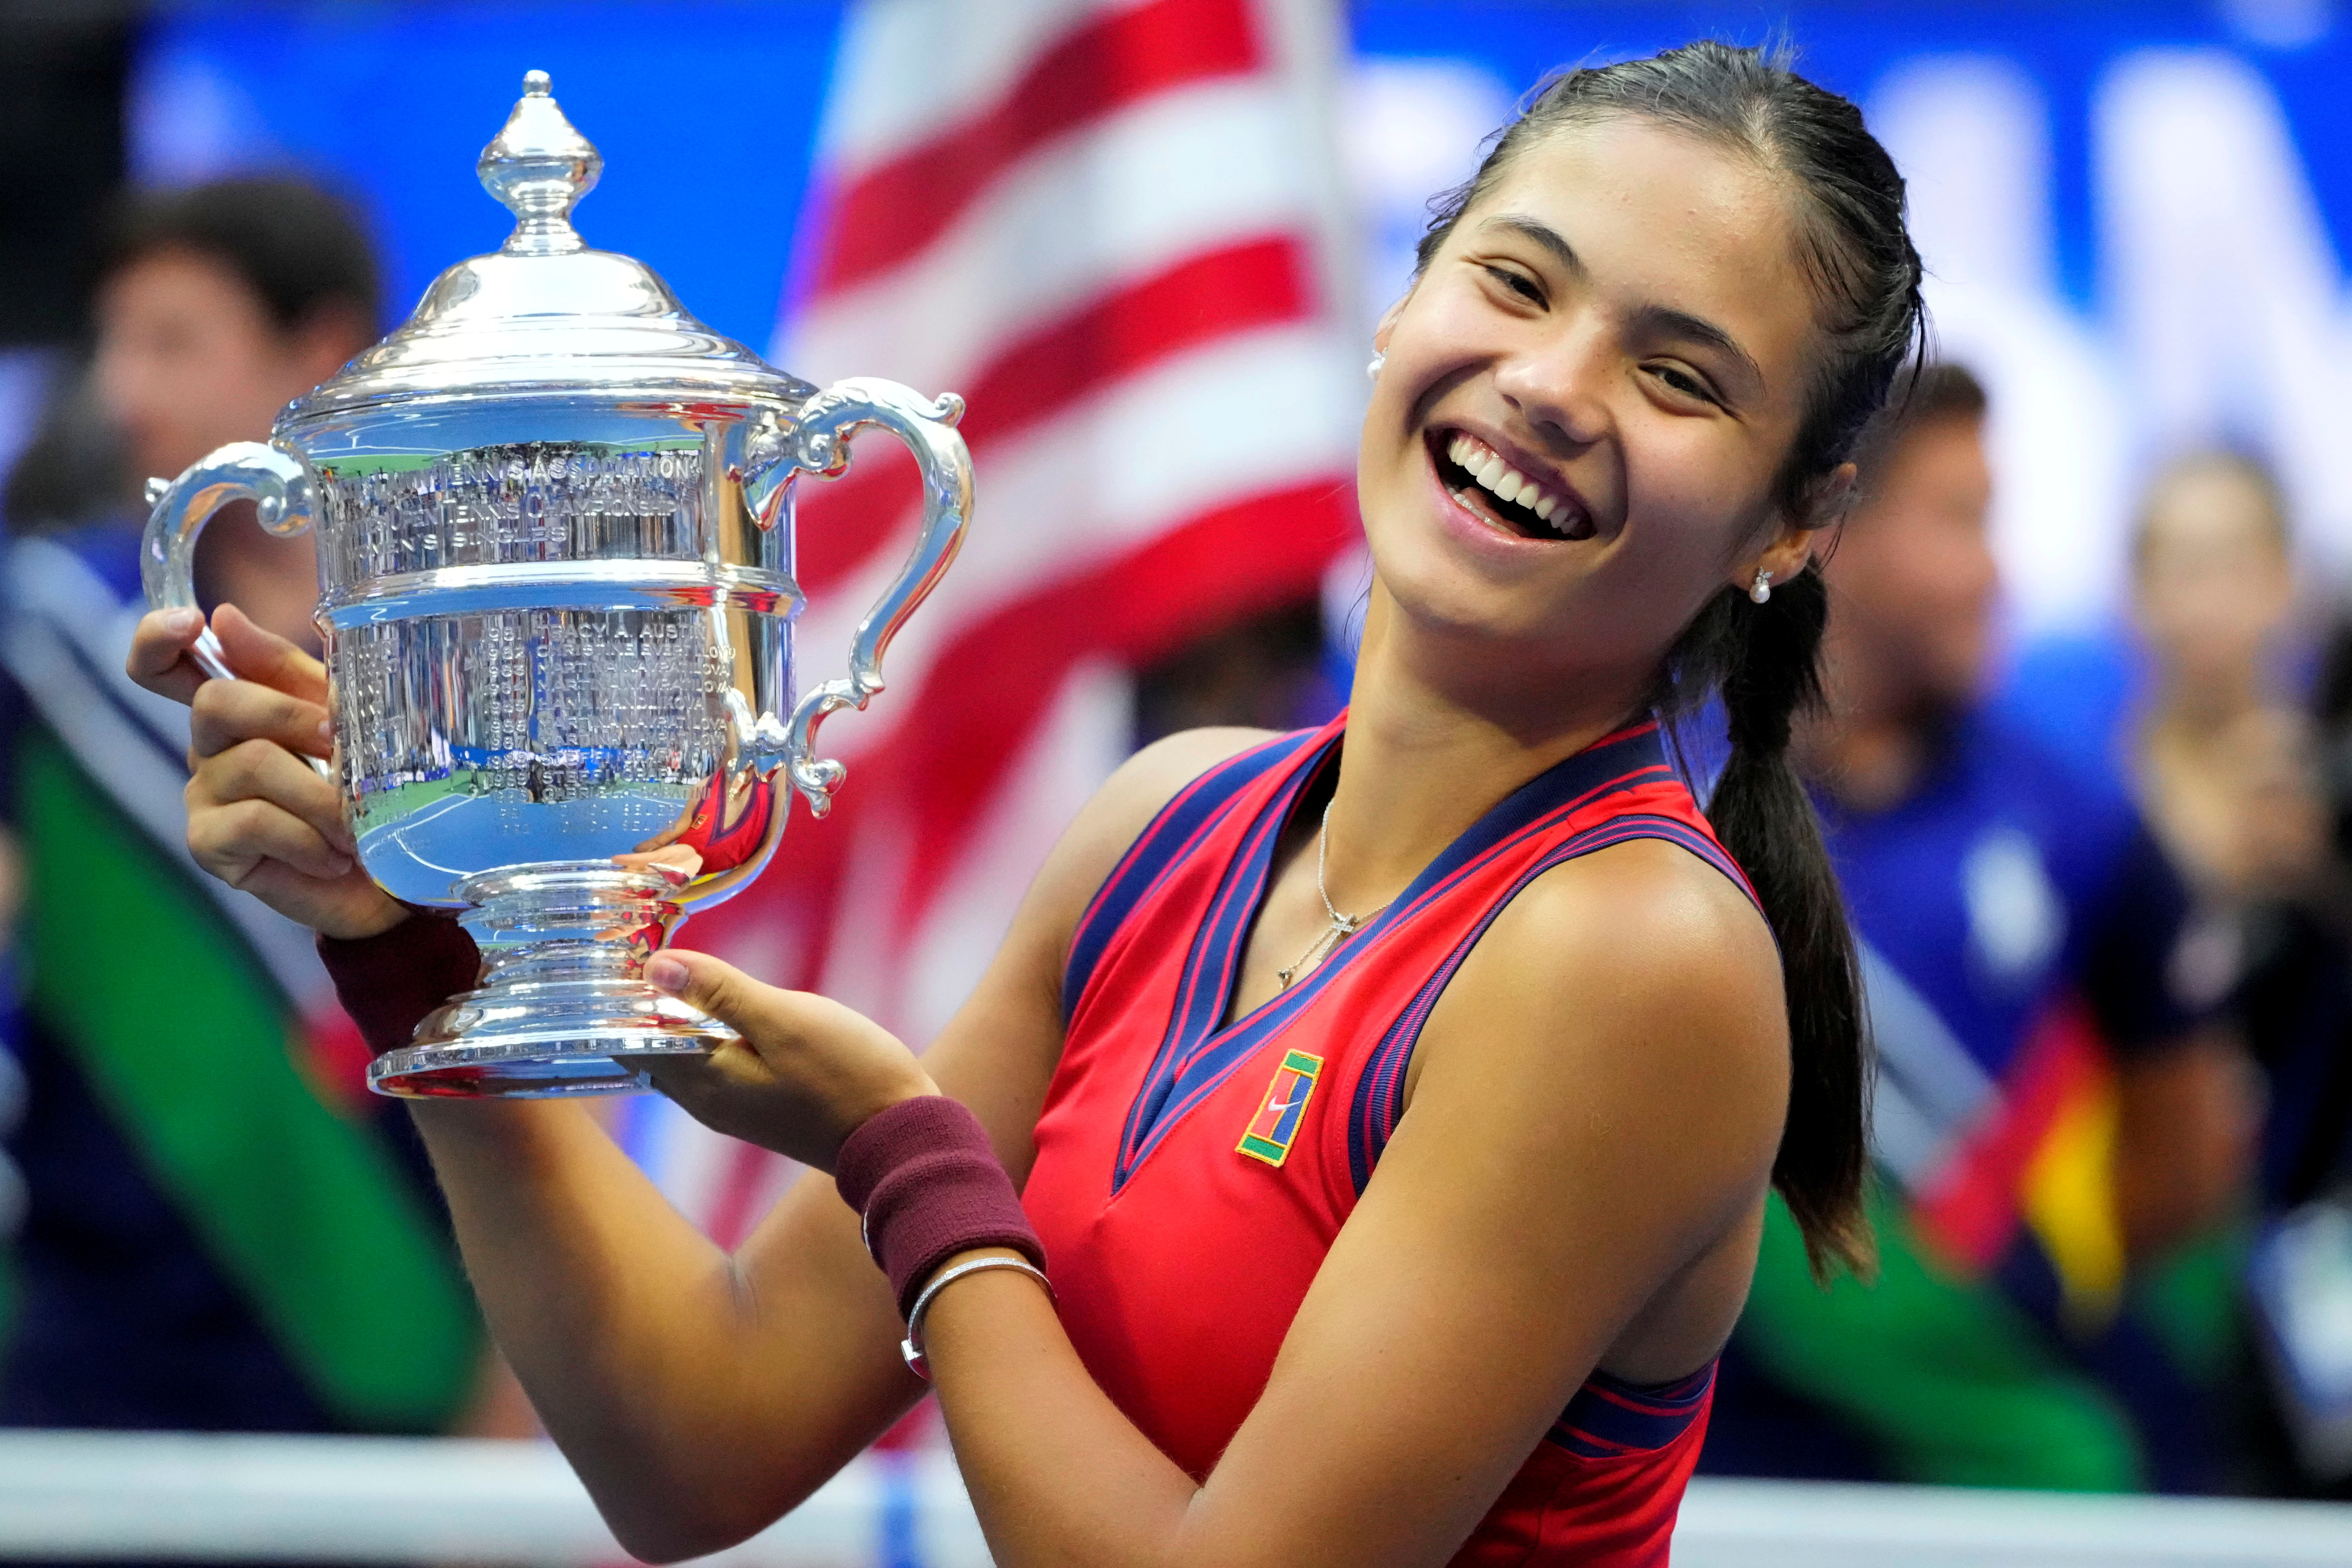 Sep 11, 2021; Flushing, NY, USA; Emma Raducanu of Great Britain celebrates with the U.S. Open trophy after winning her maiden Grand Slam title at the USTA Billie Jean King National Tennis Center. Mandatory Credit: Robert Deutsch-USA TODAY Sports